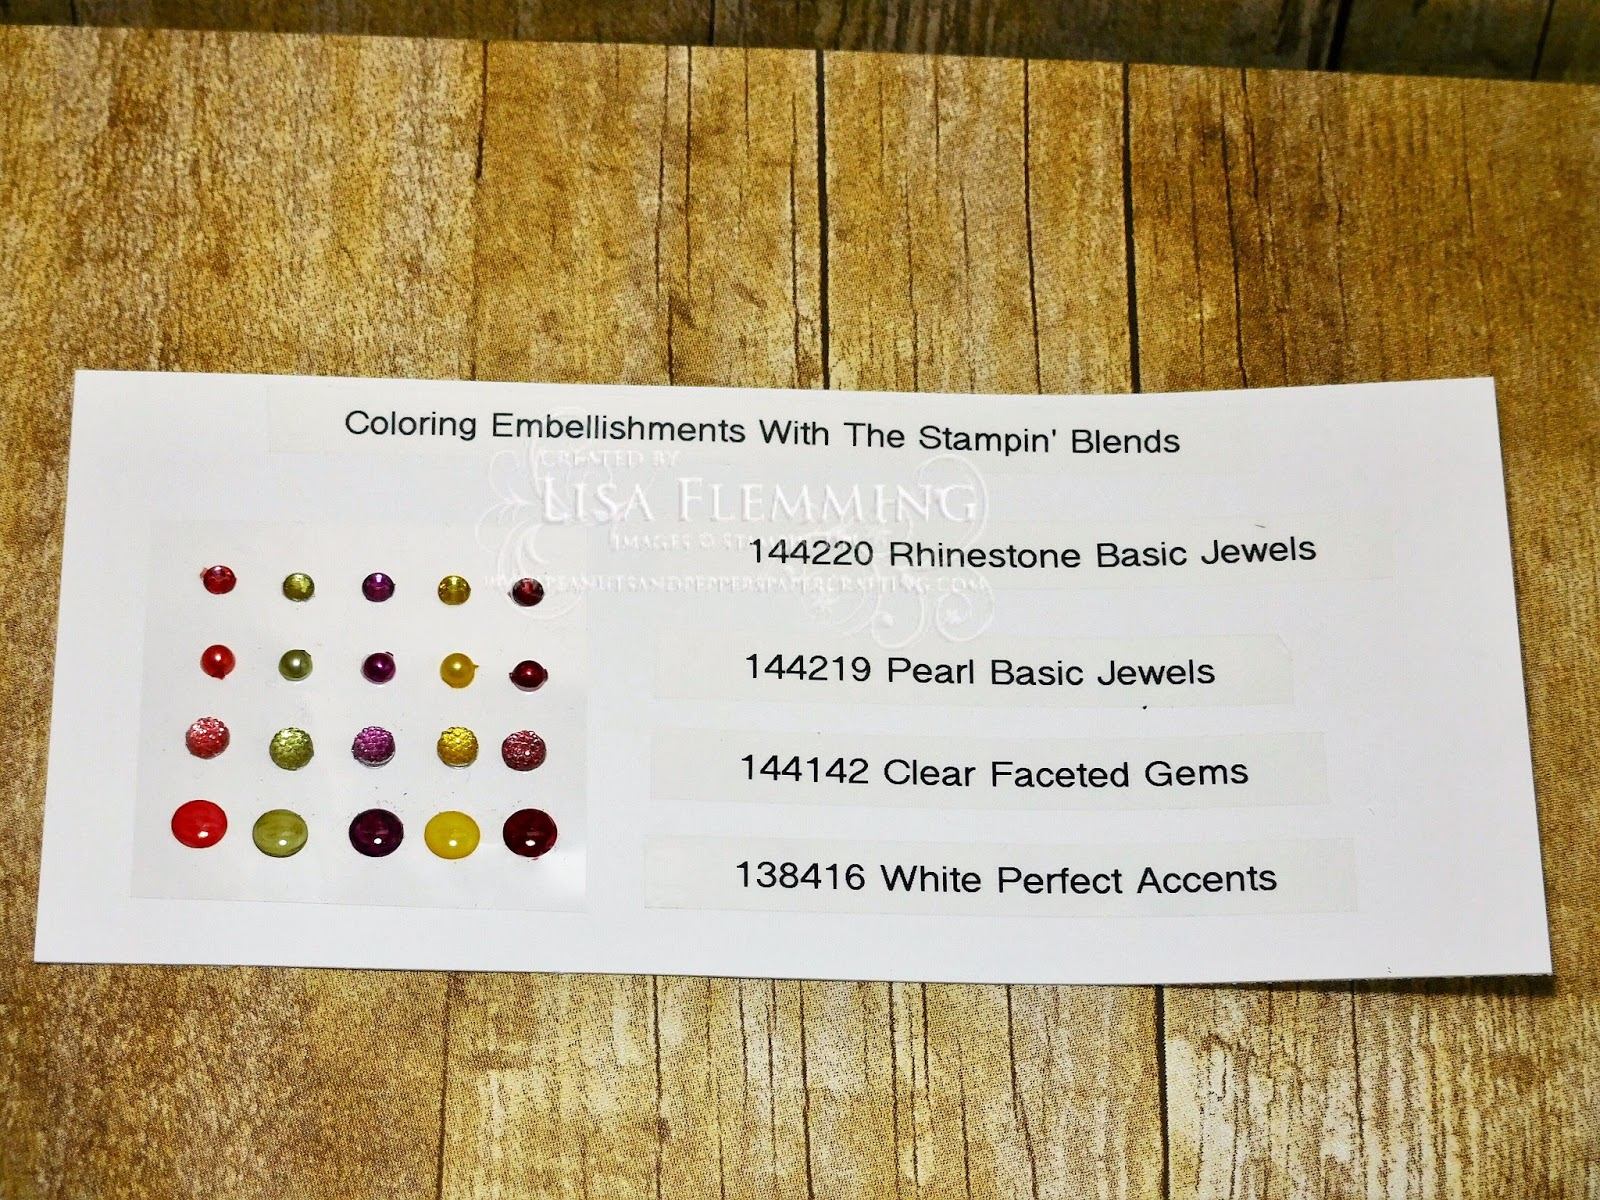 peanuts and peppers papercrafting tuesday tip using the stampin